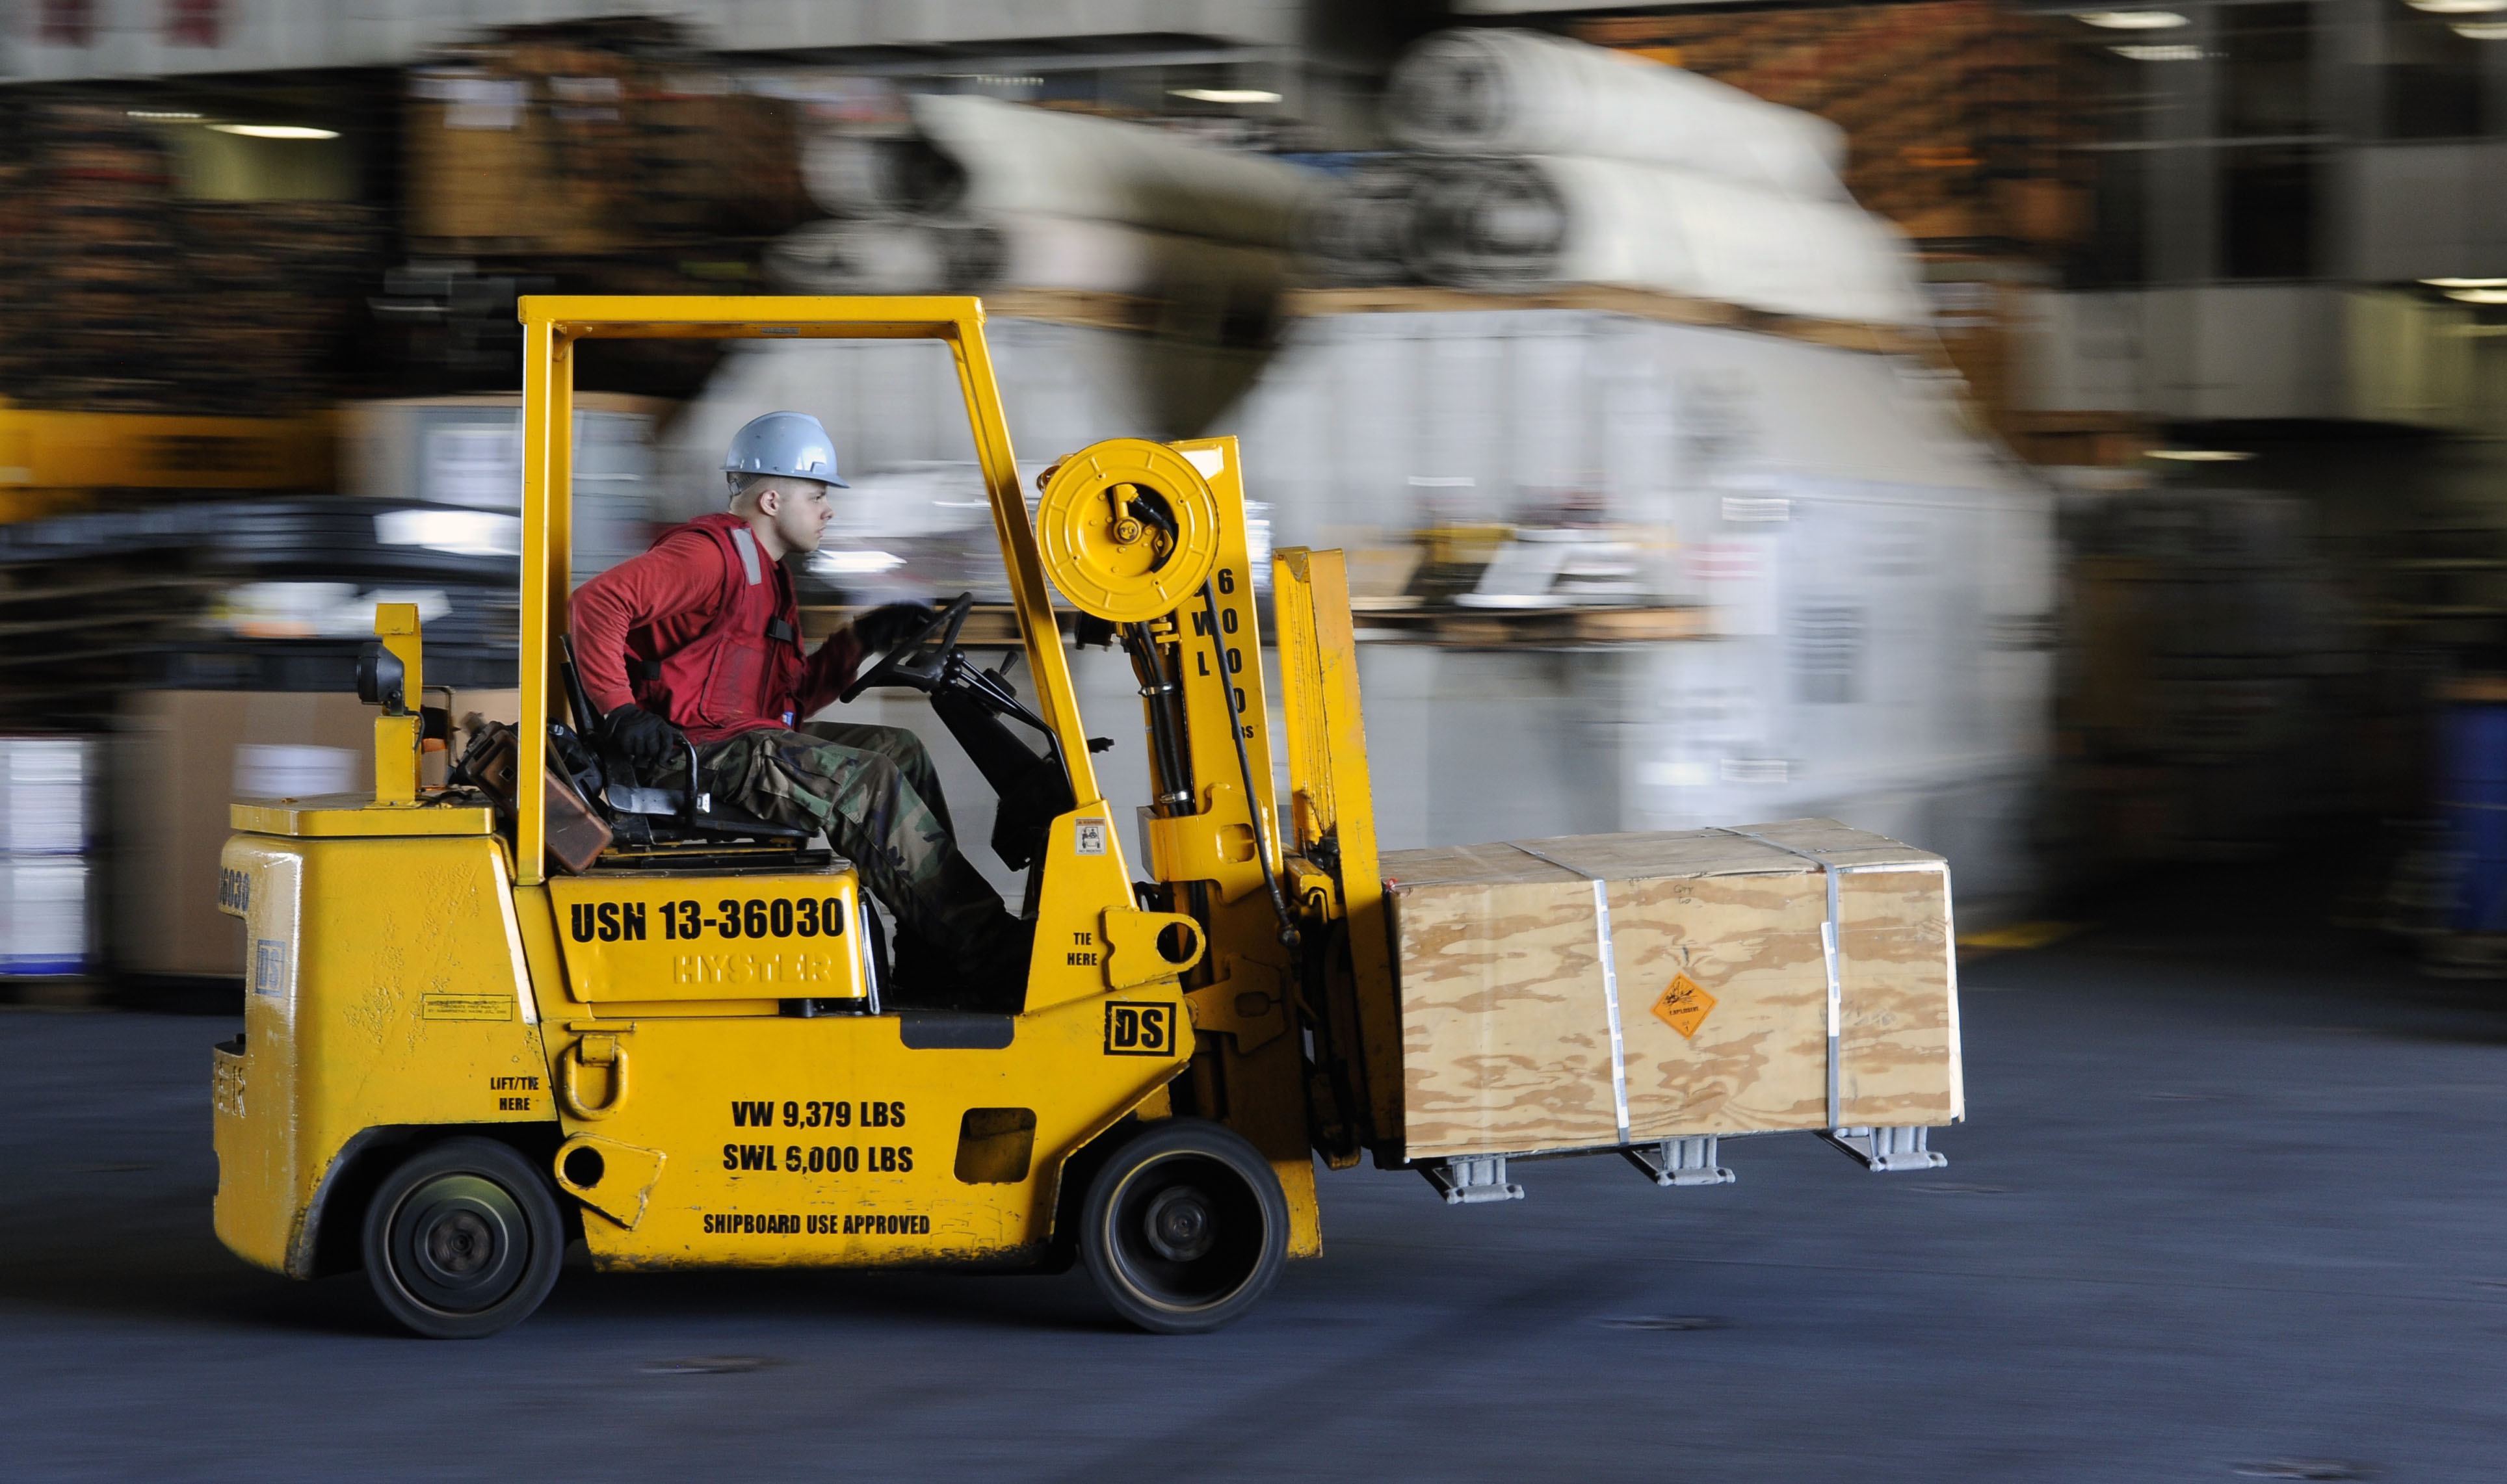 A forklift moves through a warehouse